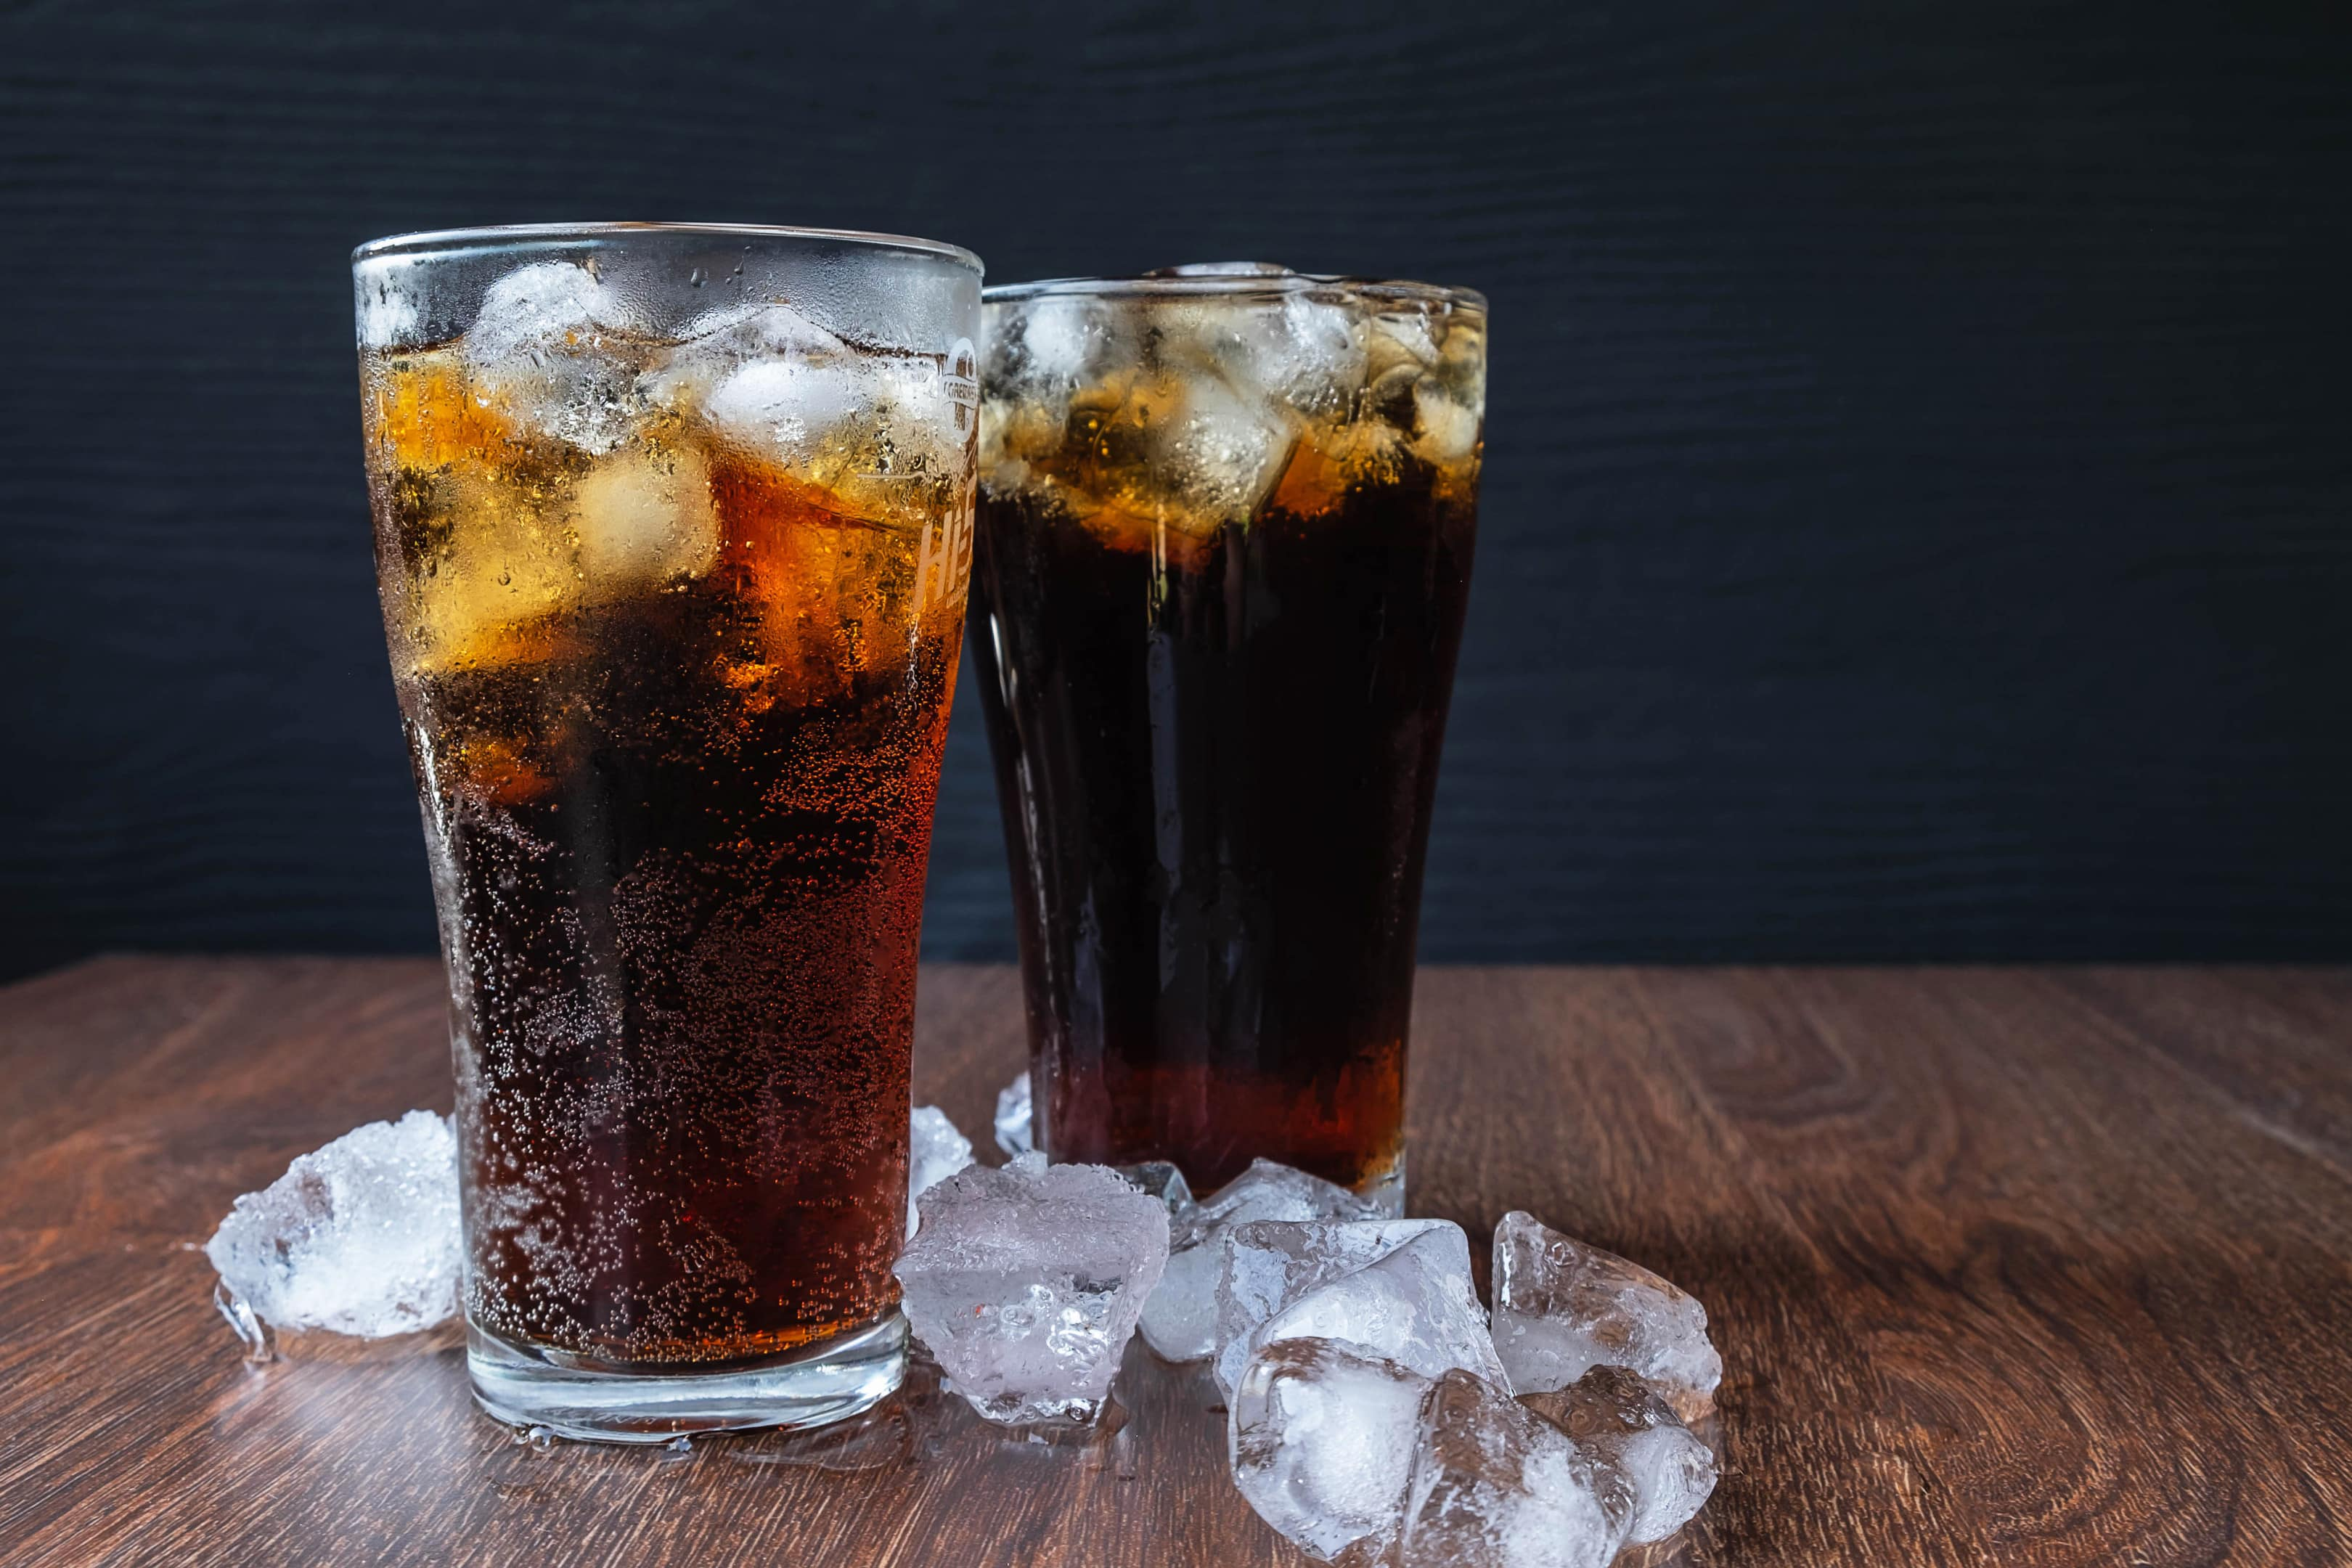 Diet cola soda glass with ice cubes on wooden table